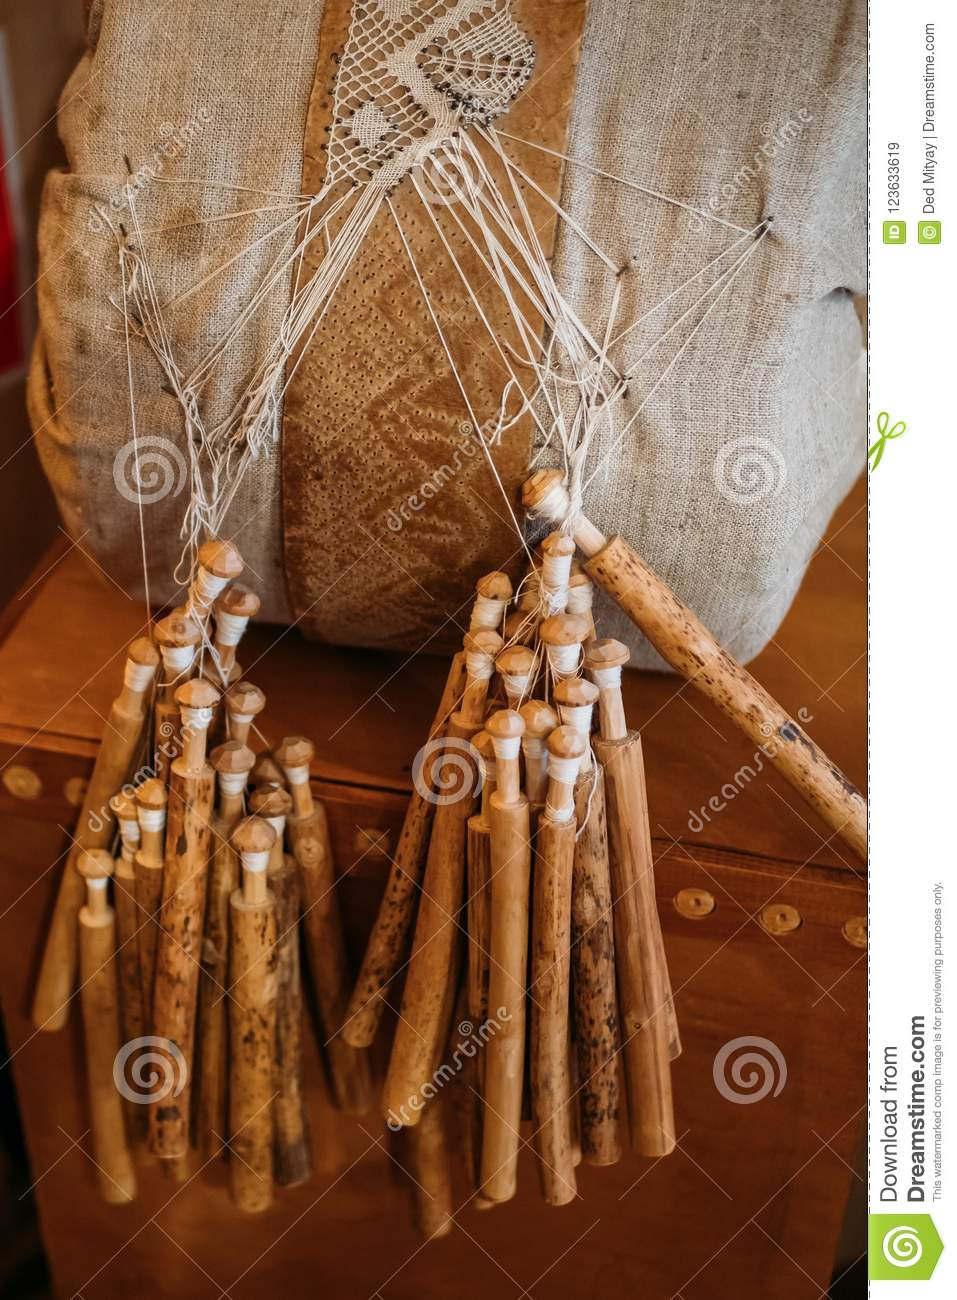 Bobbin Lace Equipment For Handmade Craft Lace Making Wooden Tools Stock Image Image Of Handwork Decoration 123633619